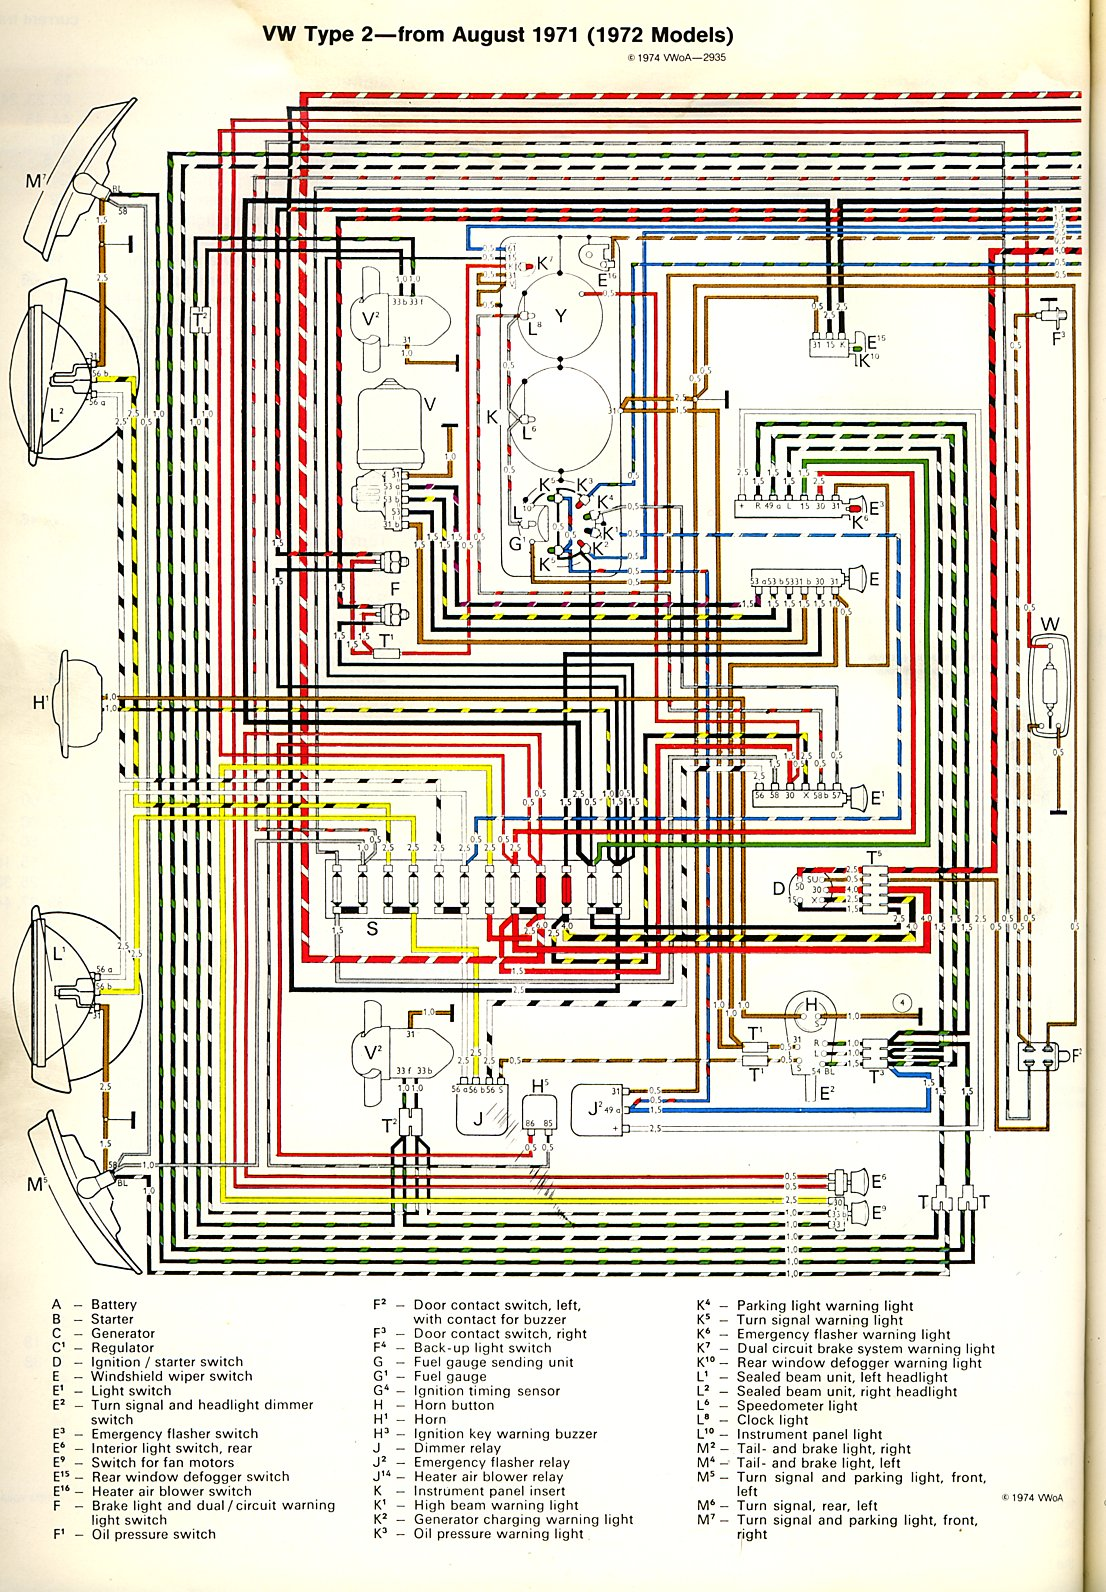 DerWhitesWiringDiagram furthermore Discussion C6922 ds545986 furthermore ChargingSystem additionally 1967 Vw Beetle furthermore Watch. on 1977 volkswagen beetle wiring diagram